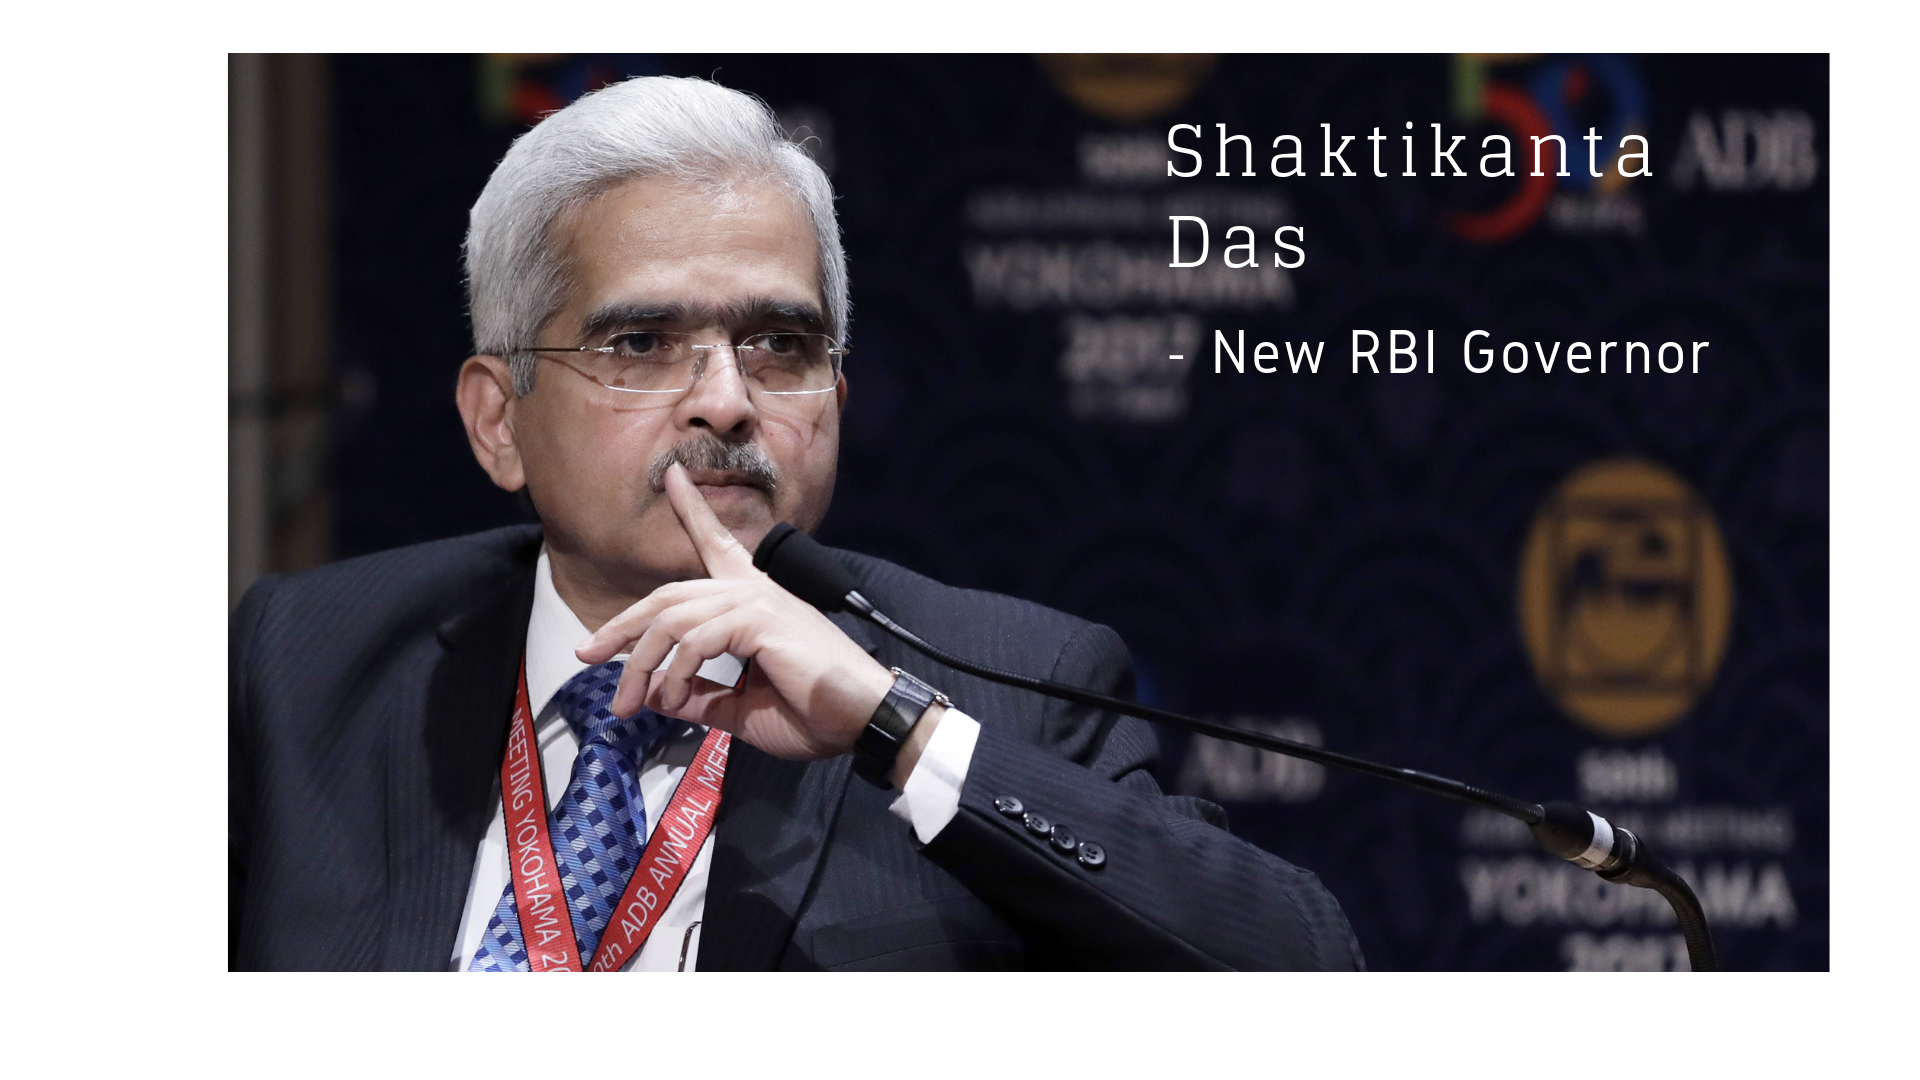 Shaktikanta Das - New RBI Governor